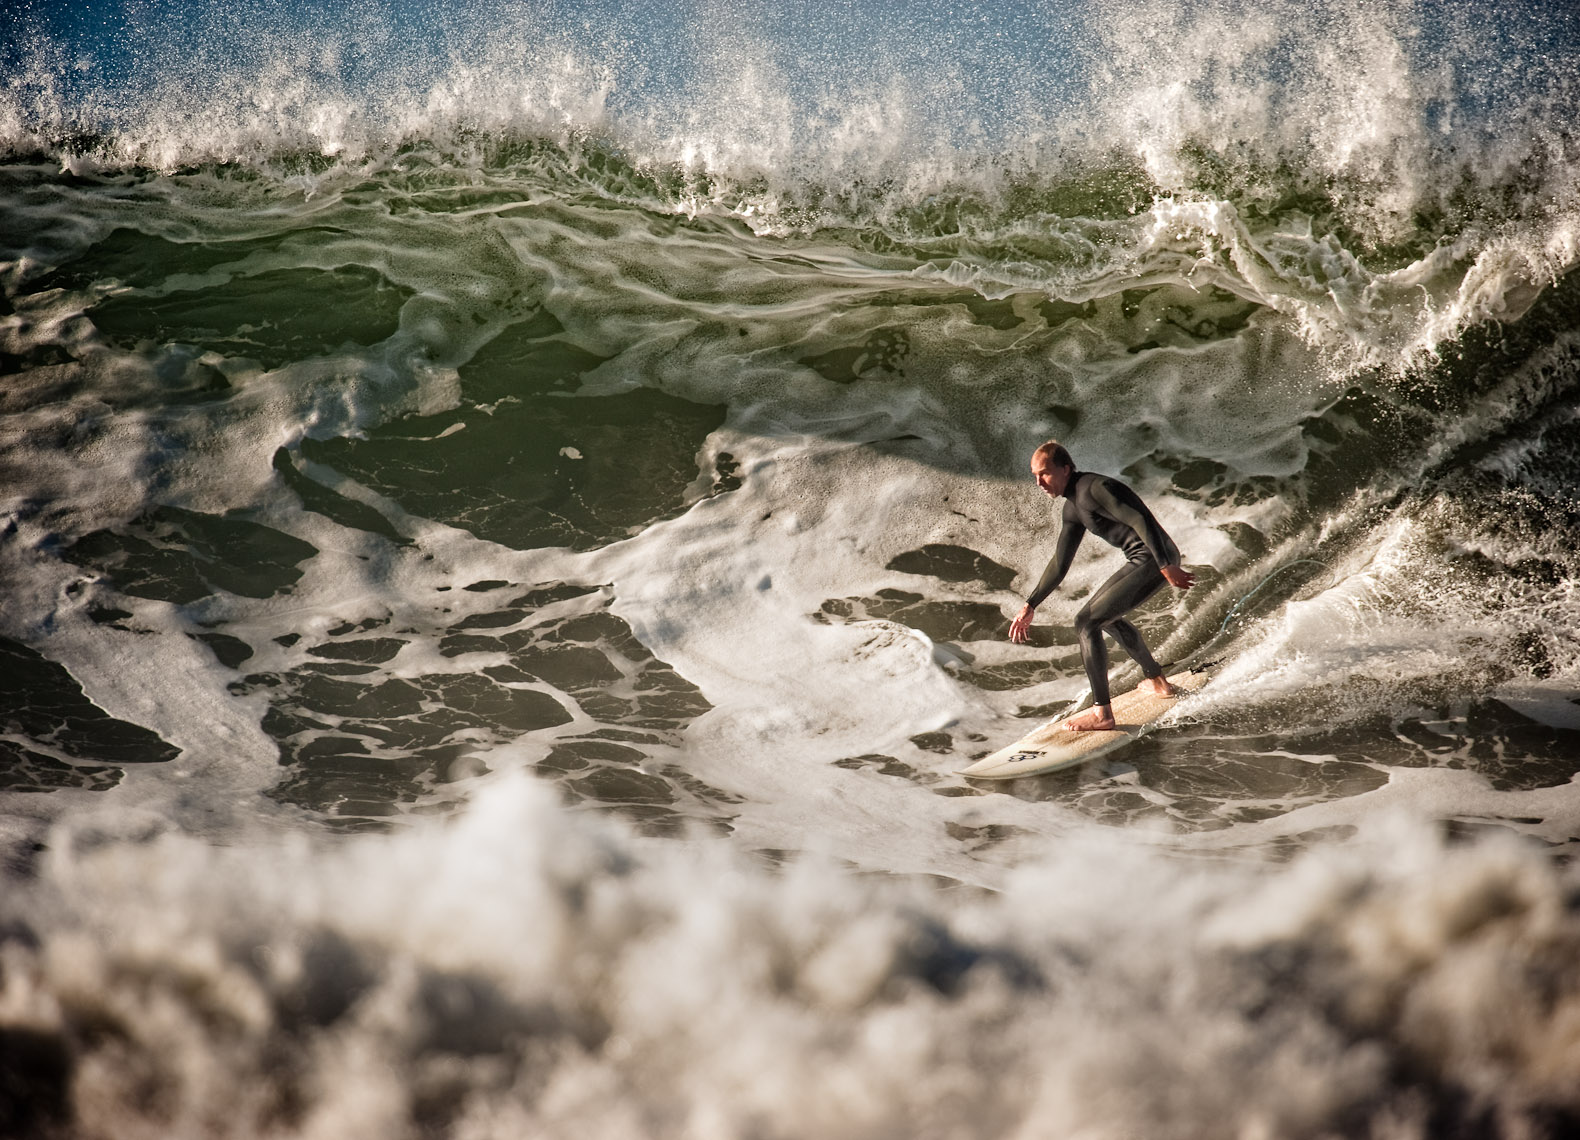 Kevin Steele - a surfer on a big wave at Rincon